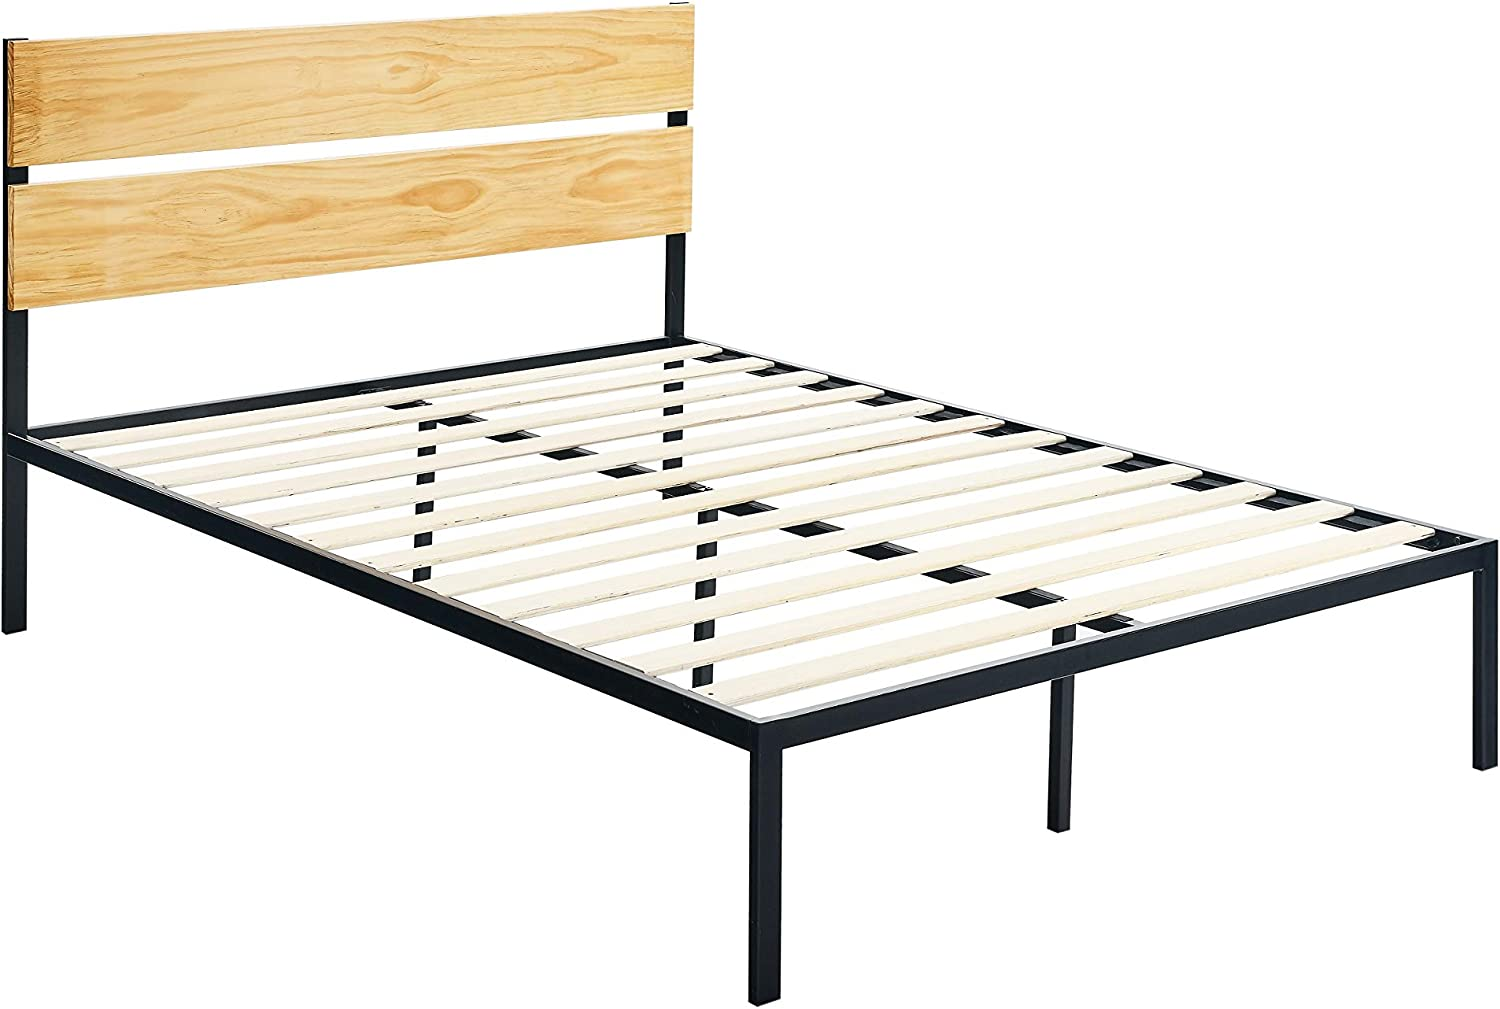 AmazonBasics Arielle Metal and Wood Platform Bed with Headboard - Wood Slat Support, Twin